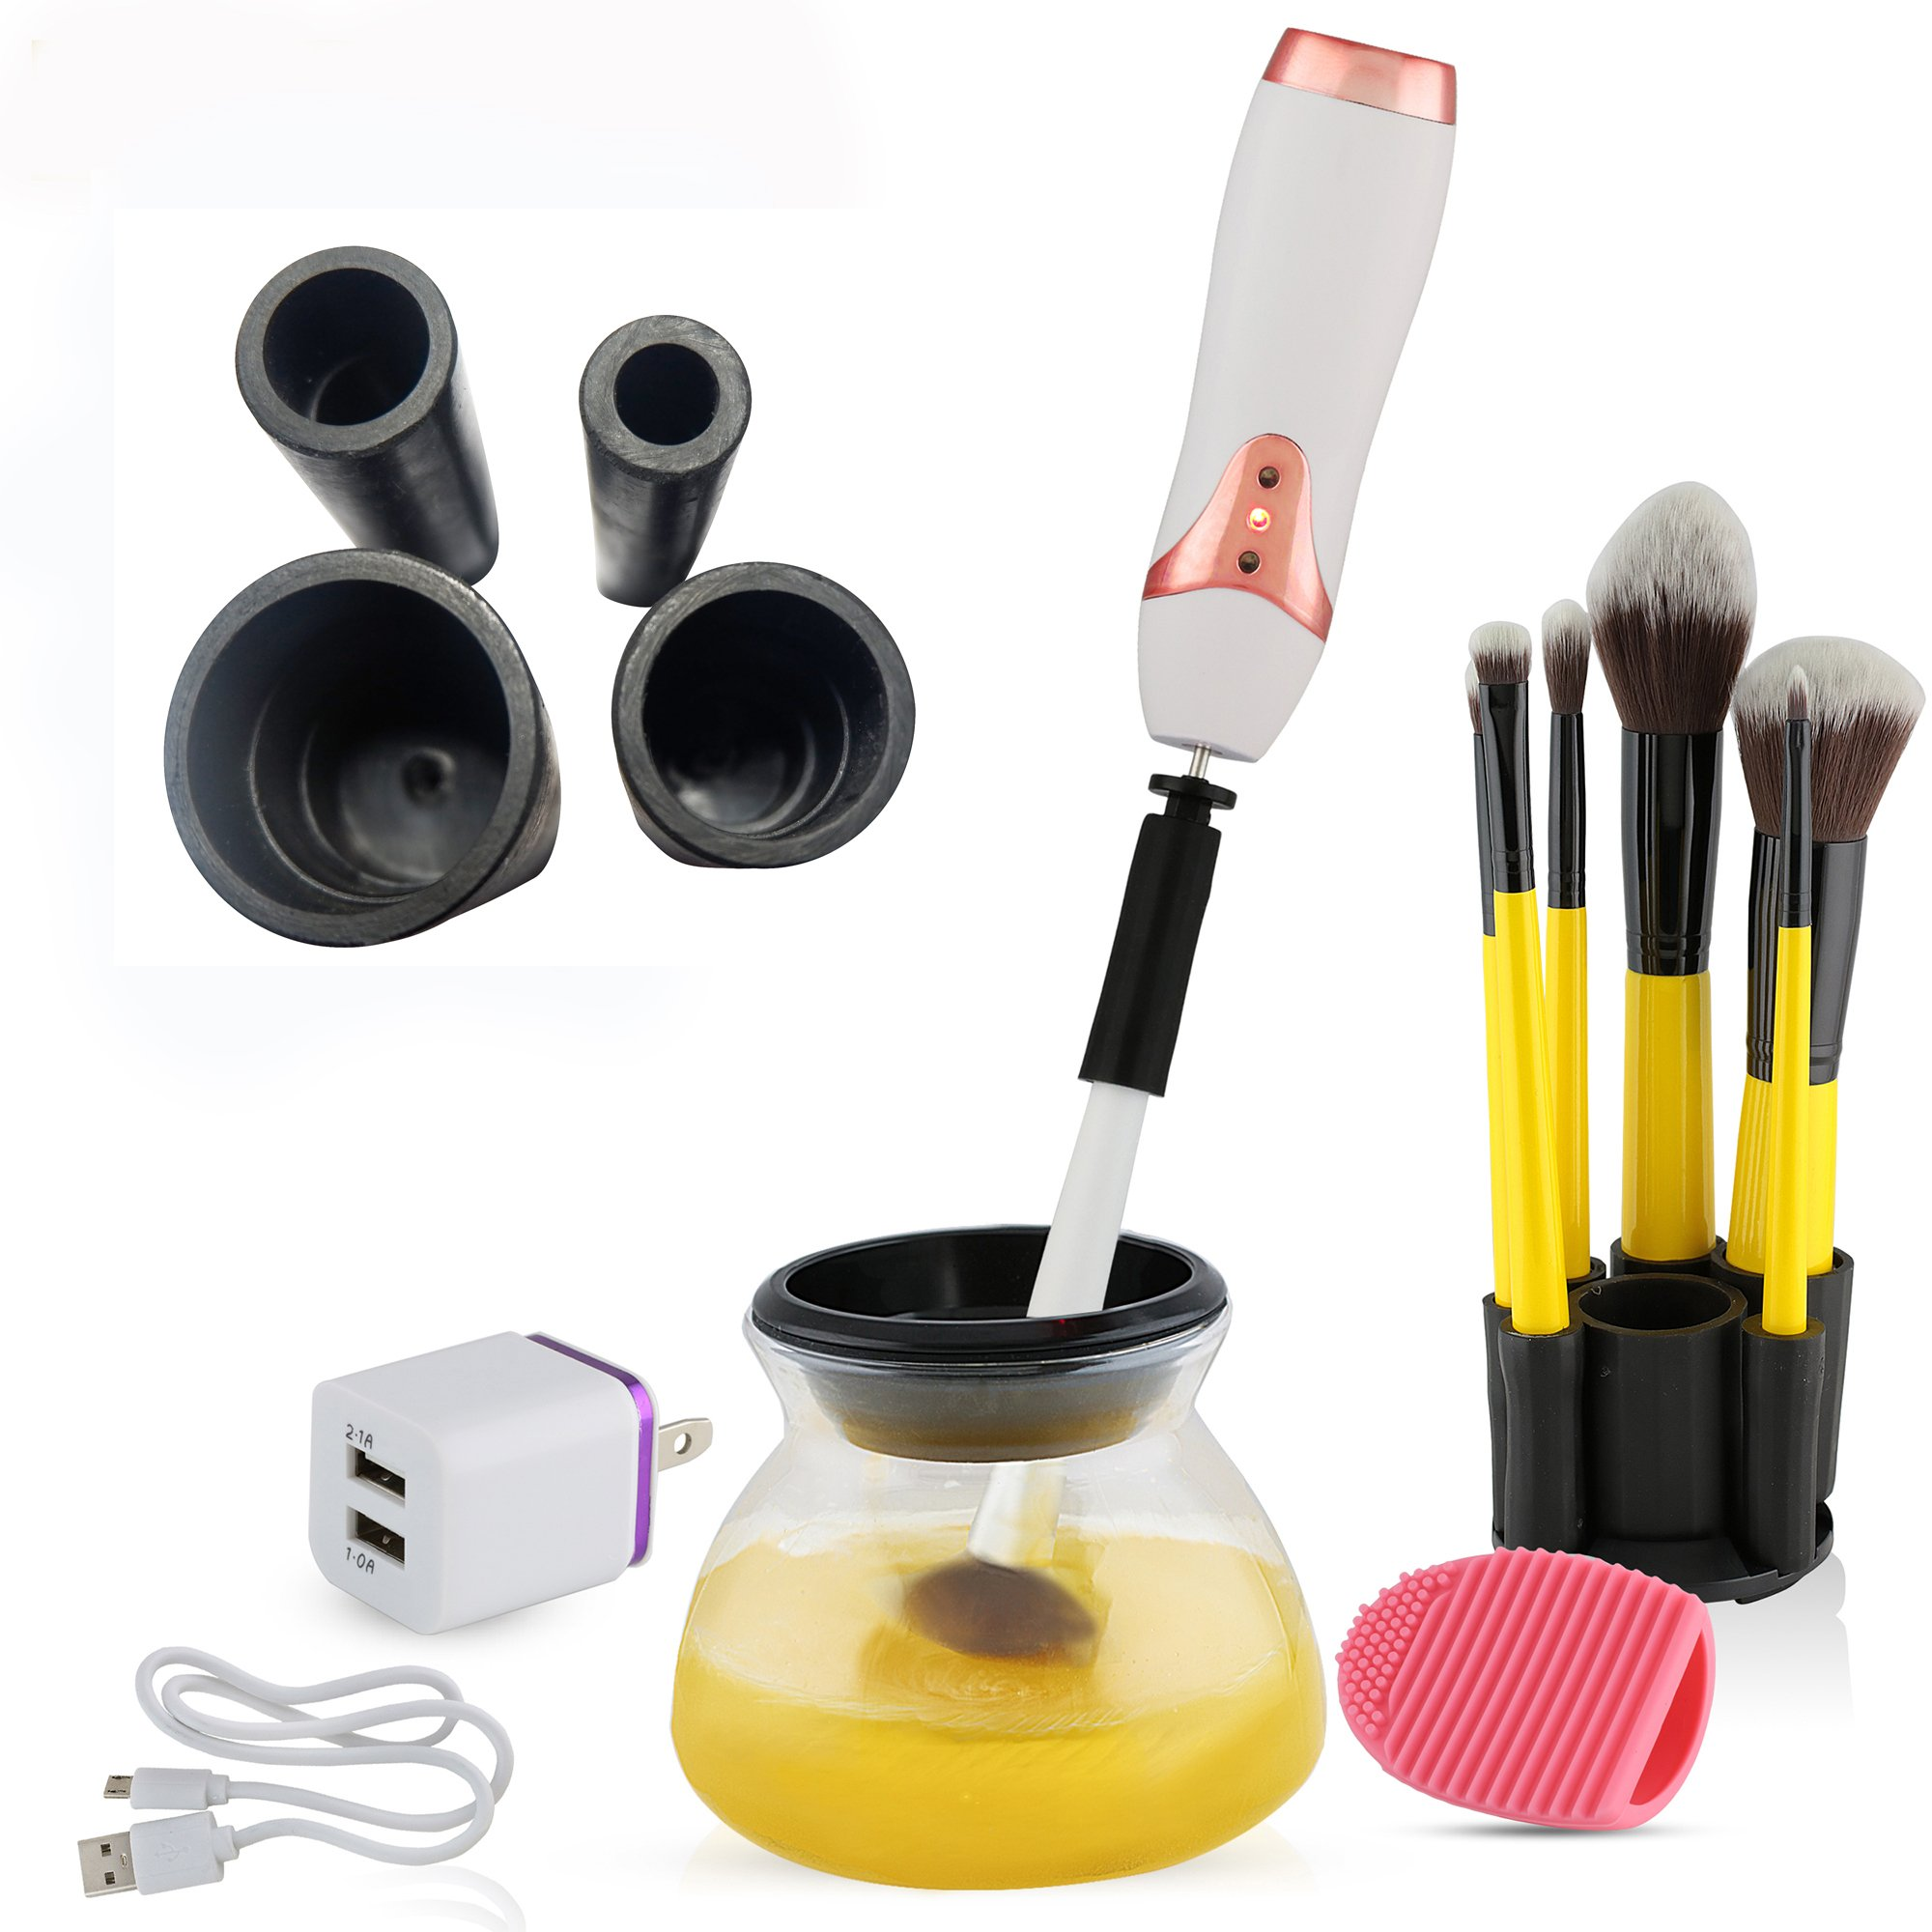 USB Rechargeable Makeup Brush Cleaner - Electronic Spinner Automatically Cleans Virtually ANY Brush Size in Exclusive New Patented Collar Design. Thoroughly Cleans and Dries your Brushes in Seconds.